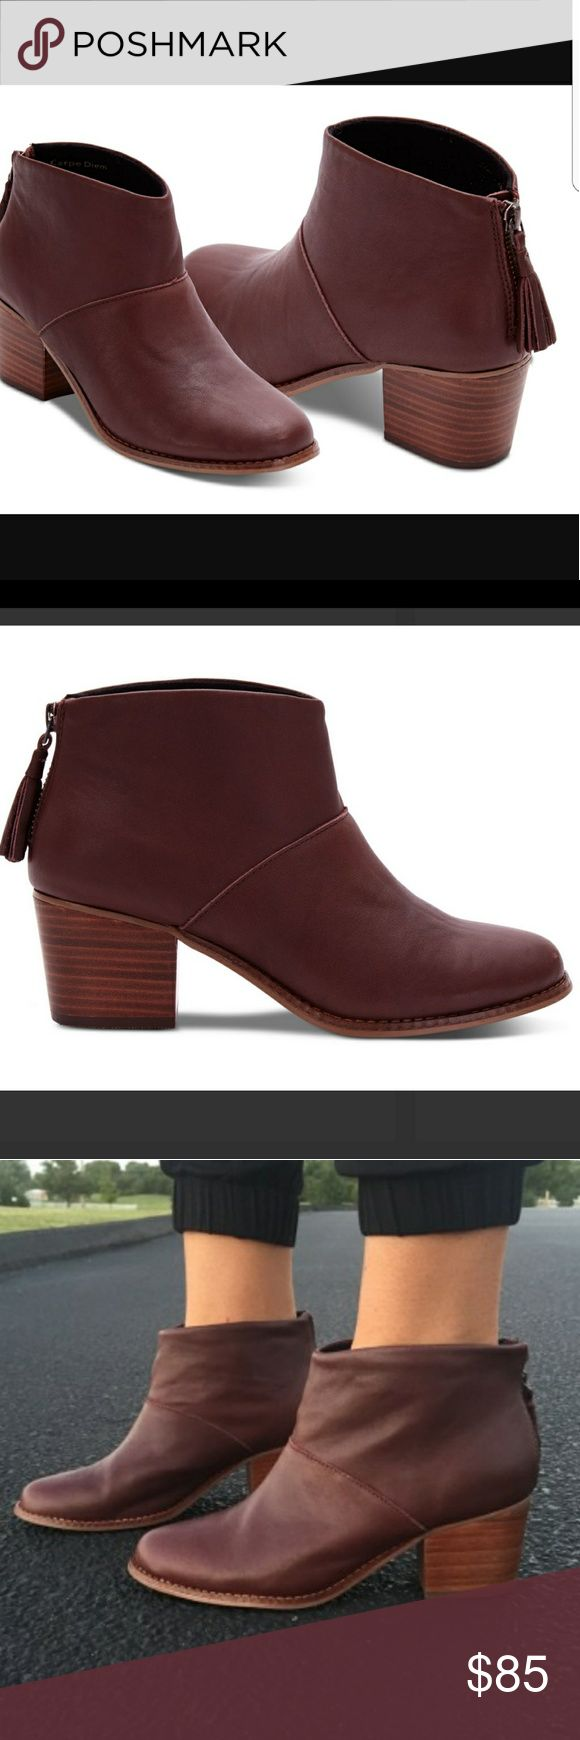 TOMS Oxblood Leather Ankle Boot Don't even think about transitioning seasons without a new ankle bootie in your collection. TOMS ankle boot starts with a stacked mid-heel and zips up the back for easy entry and a streamlined look, with a leather tassel for a playful touch. You'll wear this versatile staple with everything from skirts to cuffed jeans. TOMS Shoes